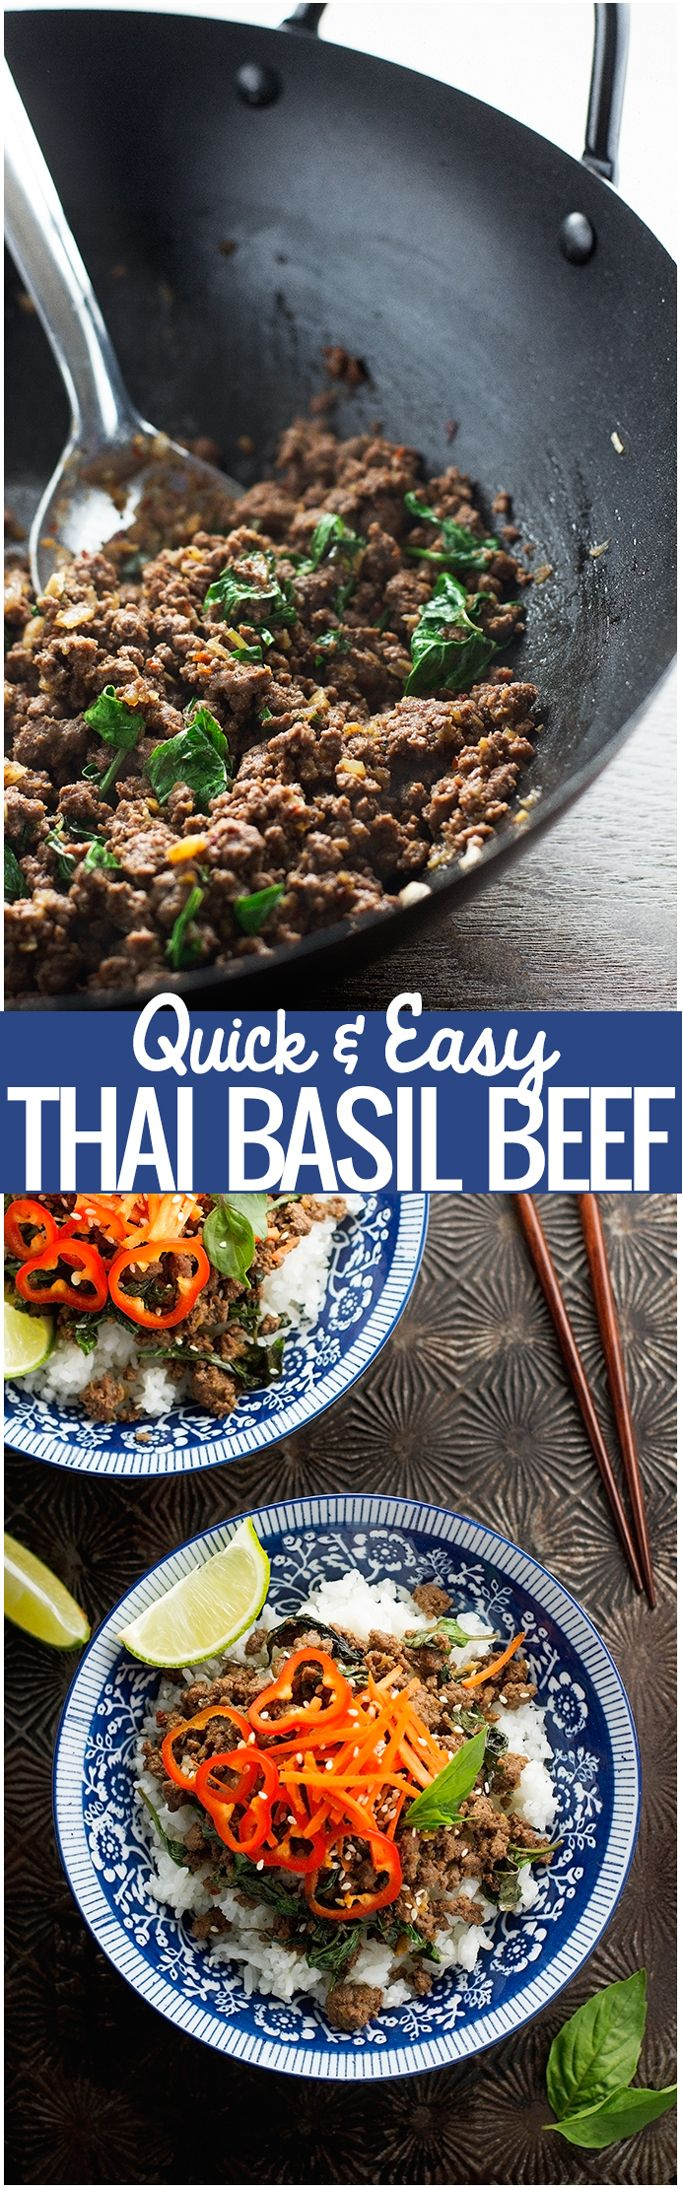 Quick easy thai basil beef recipe thai basil jar and easy quick easy thai basil beef recipe forumfinder Gallery